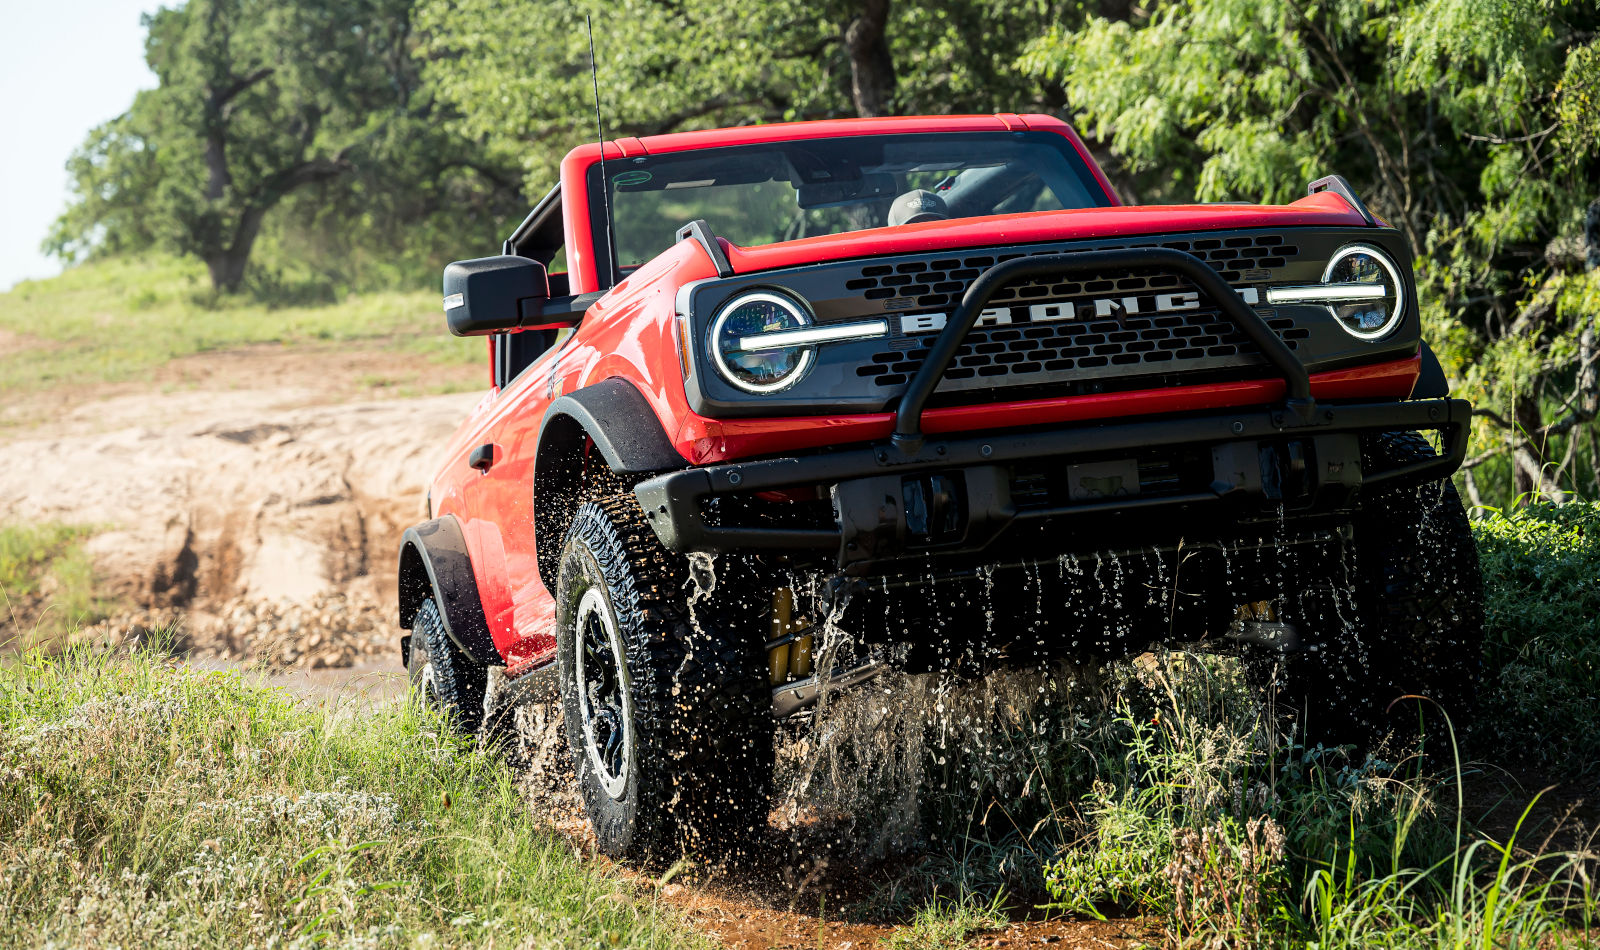 The 2021 Ford Bronco: One Drive Is All It Takes